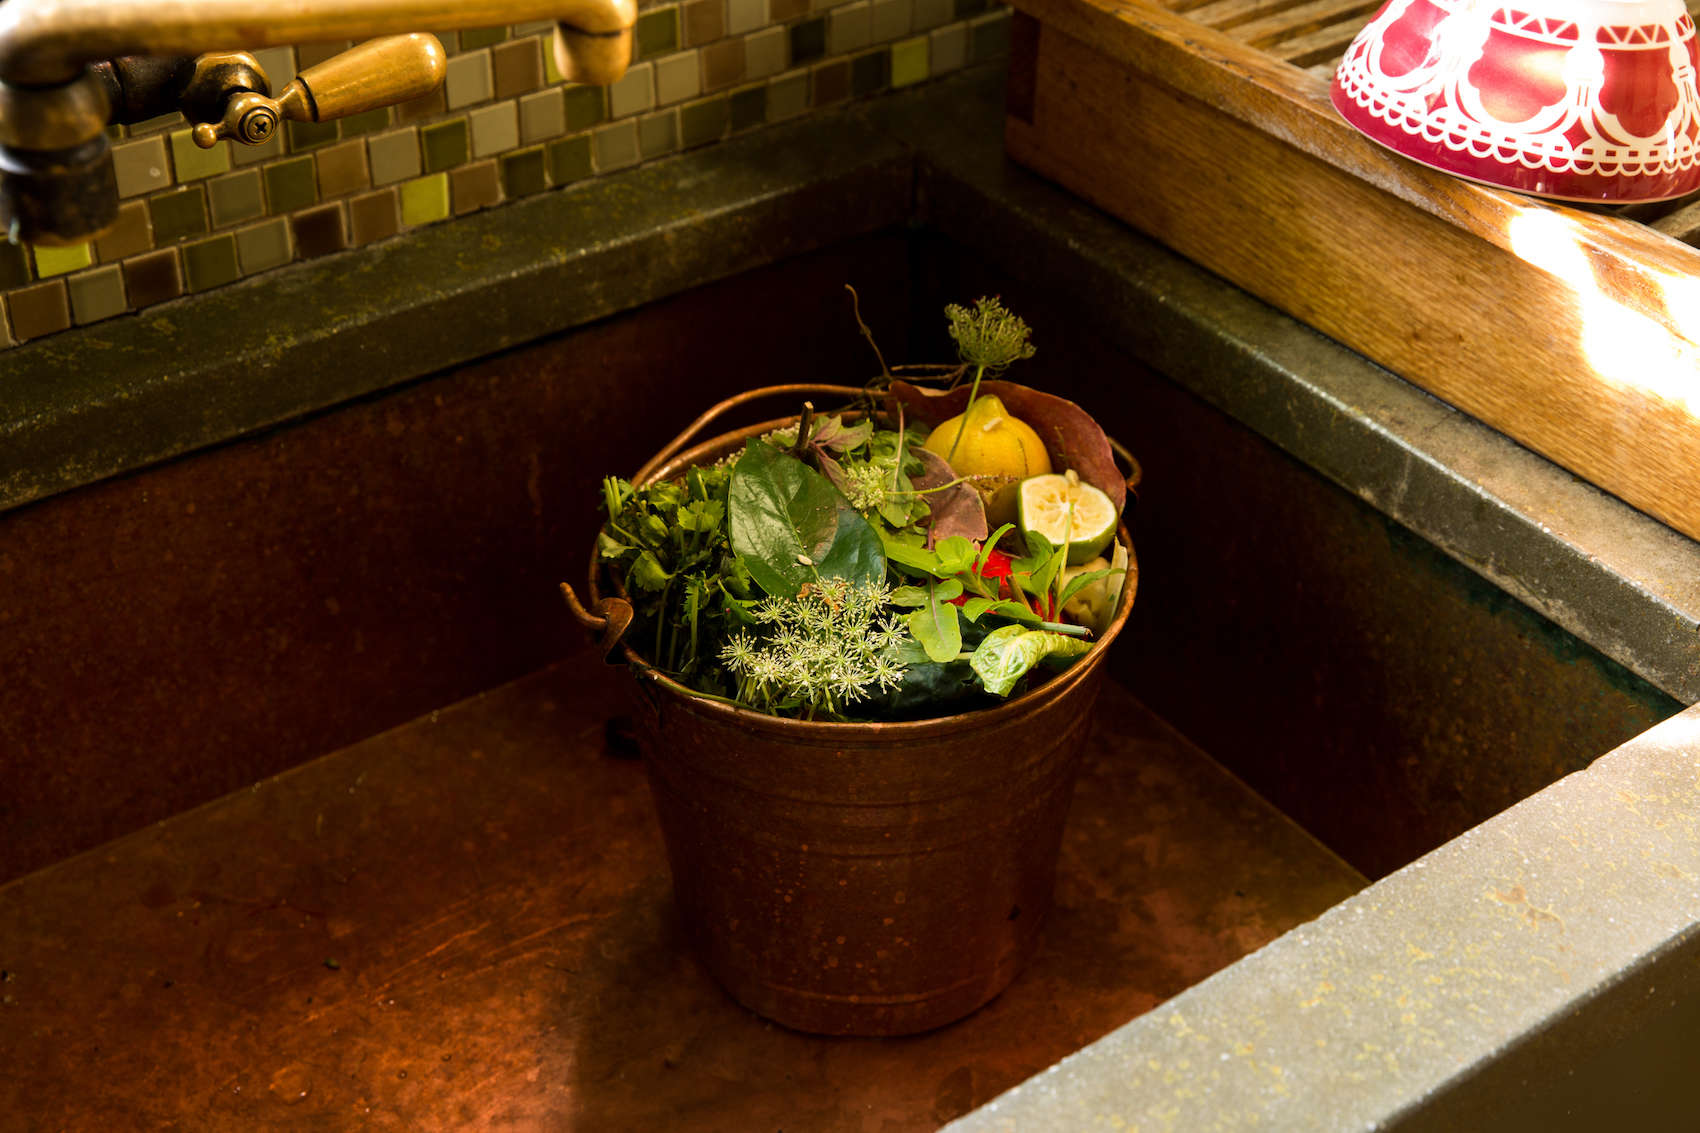 In her Berkeley, California kitchen, chef Alice Waters tosses scraps in a copper pail and empties the contents as soon as it's full. Photograph by Daniel Dent.